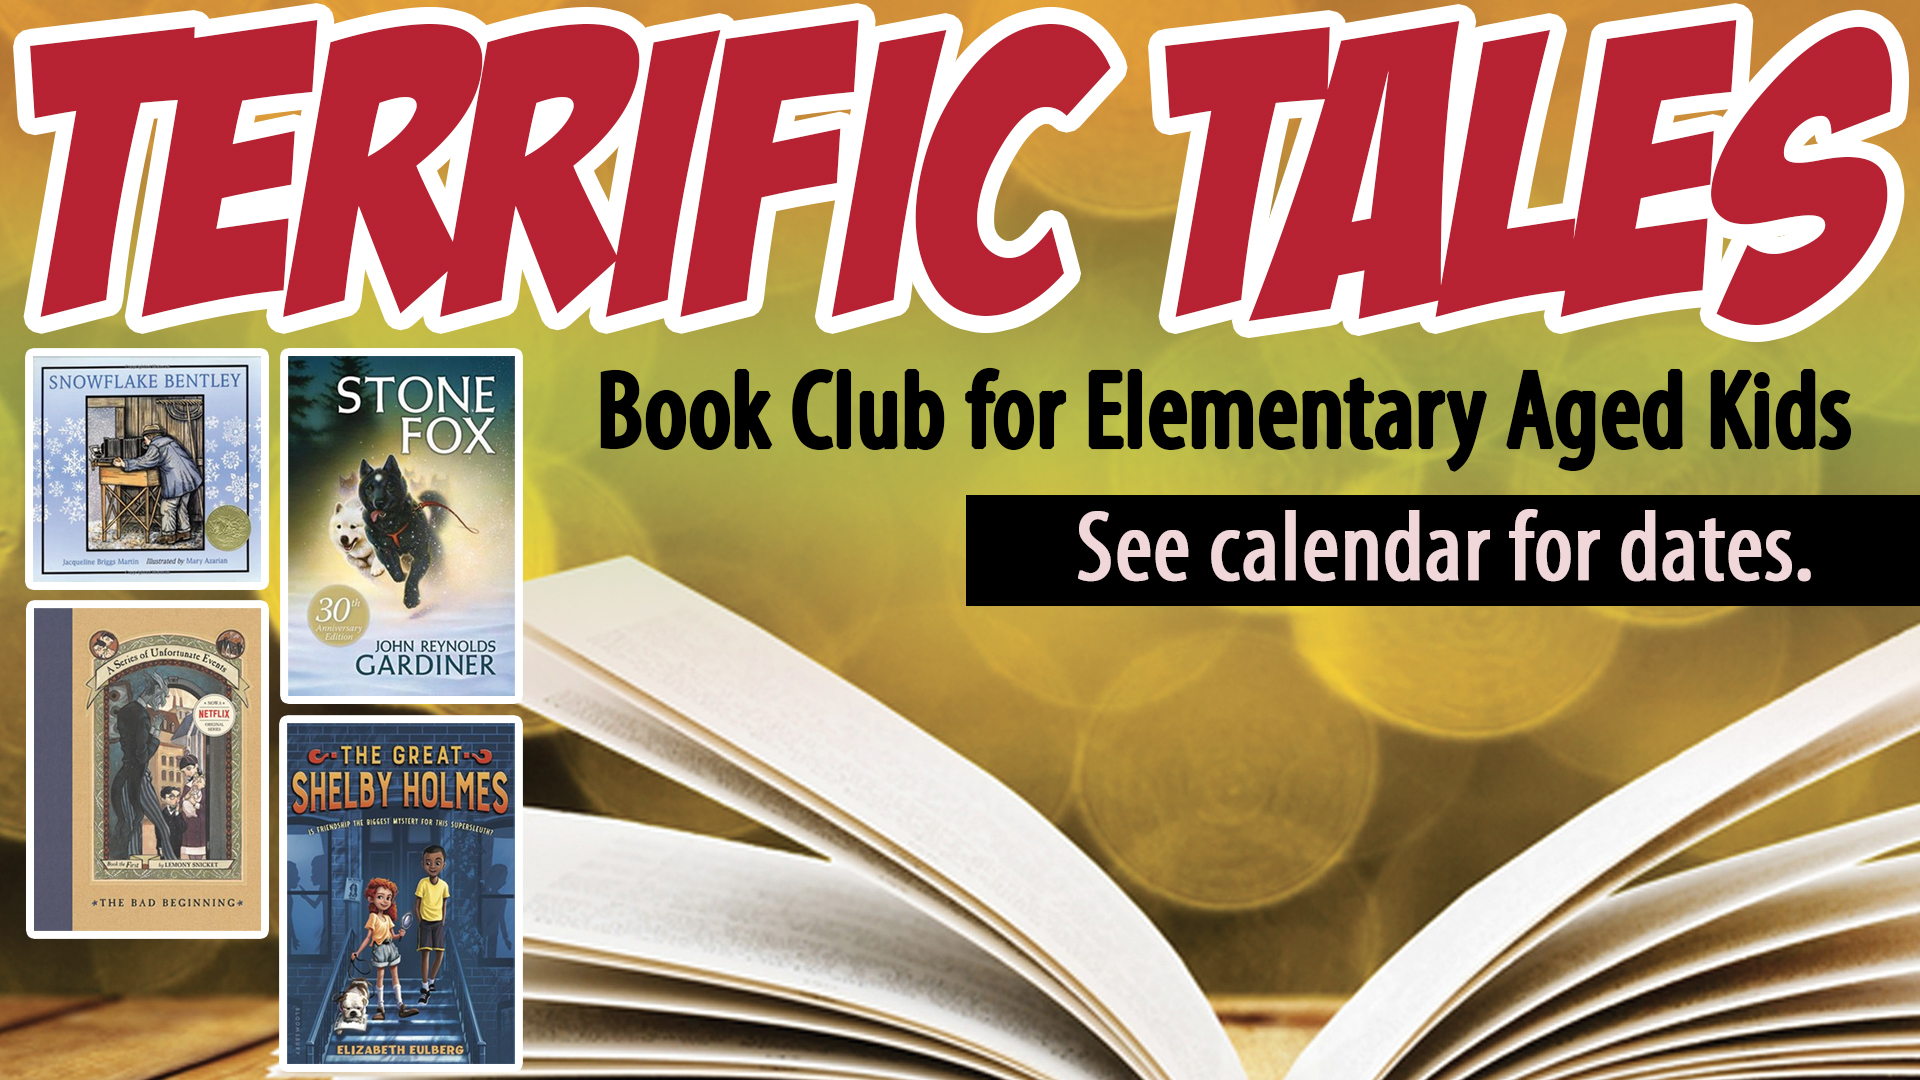 Terrific Tales Book Club